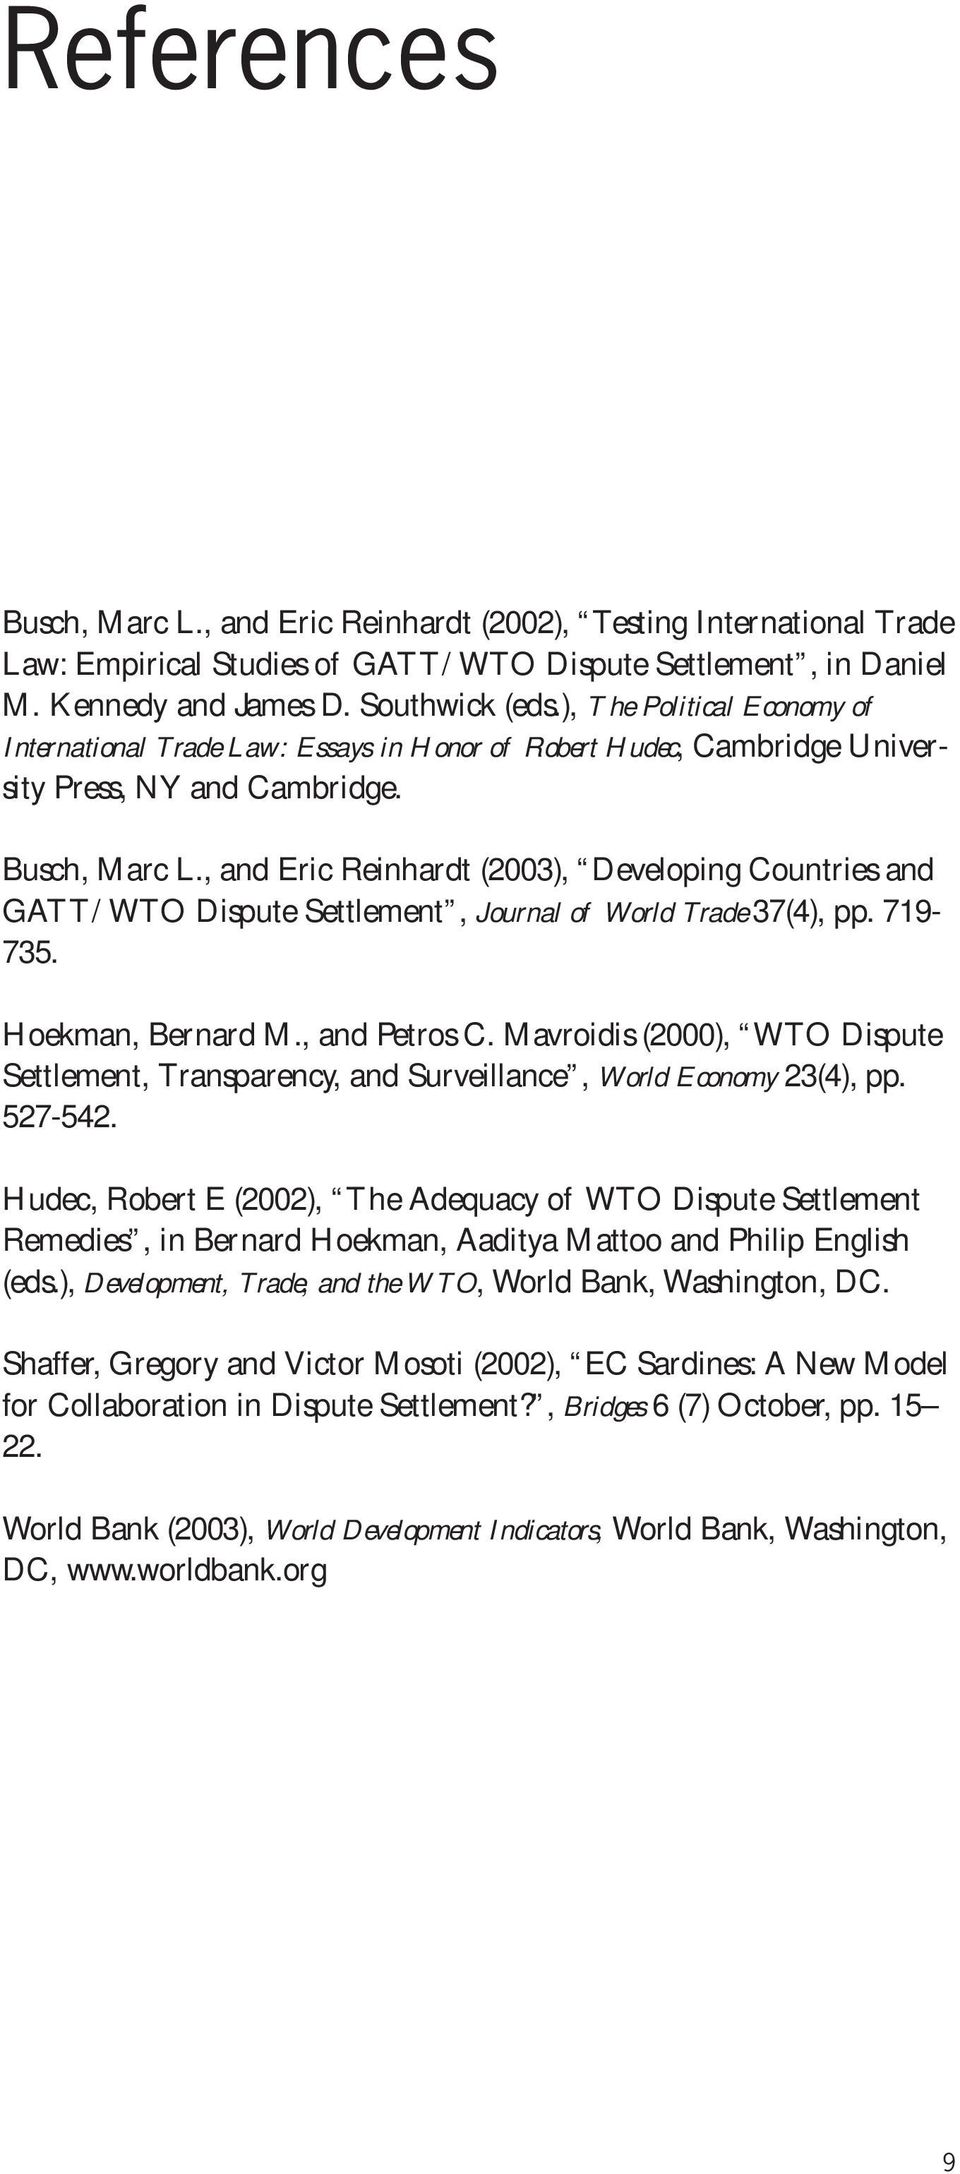 , and Eric Reinhardt (2003), Developing Countries and GATT/WTO Dispute Settlement, Journal of World Trade 37(4), pp. 719-735. Hoekman, Bernard M., and Petros C.